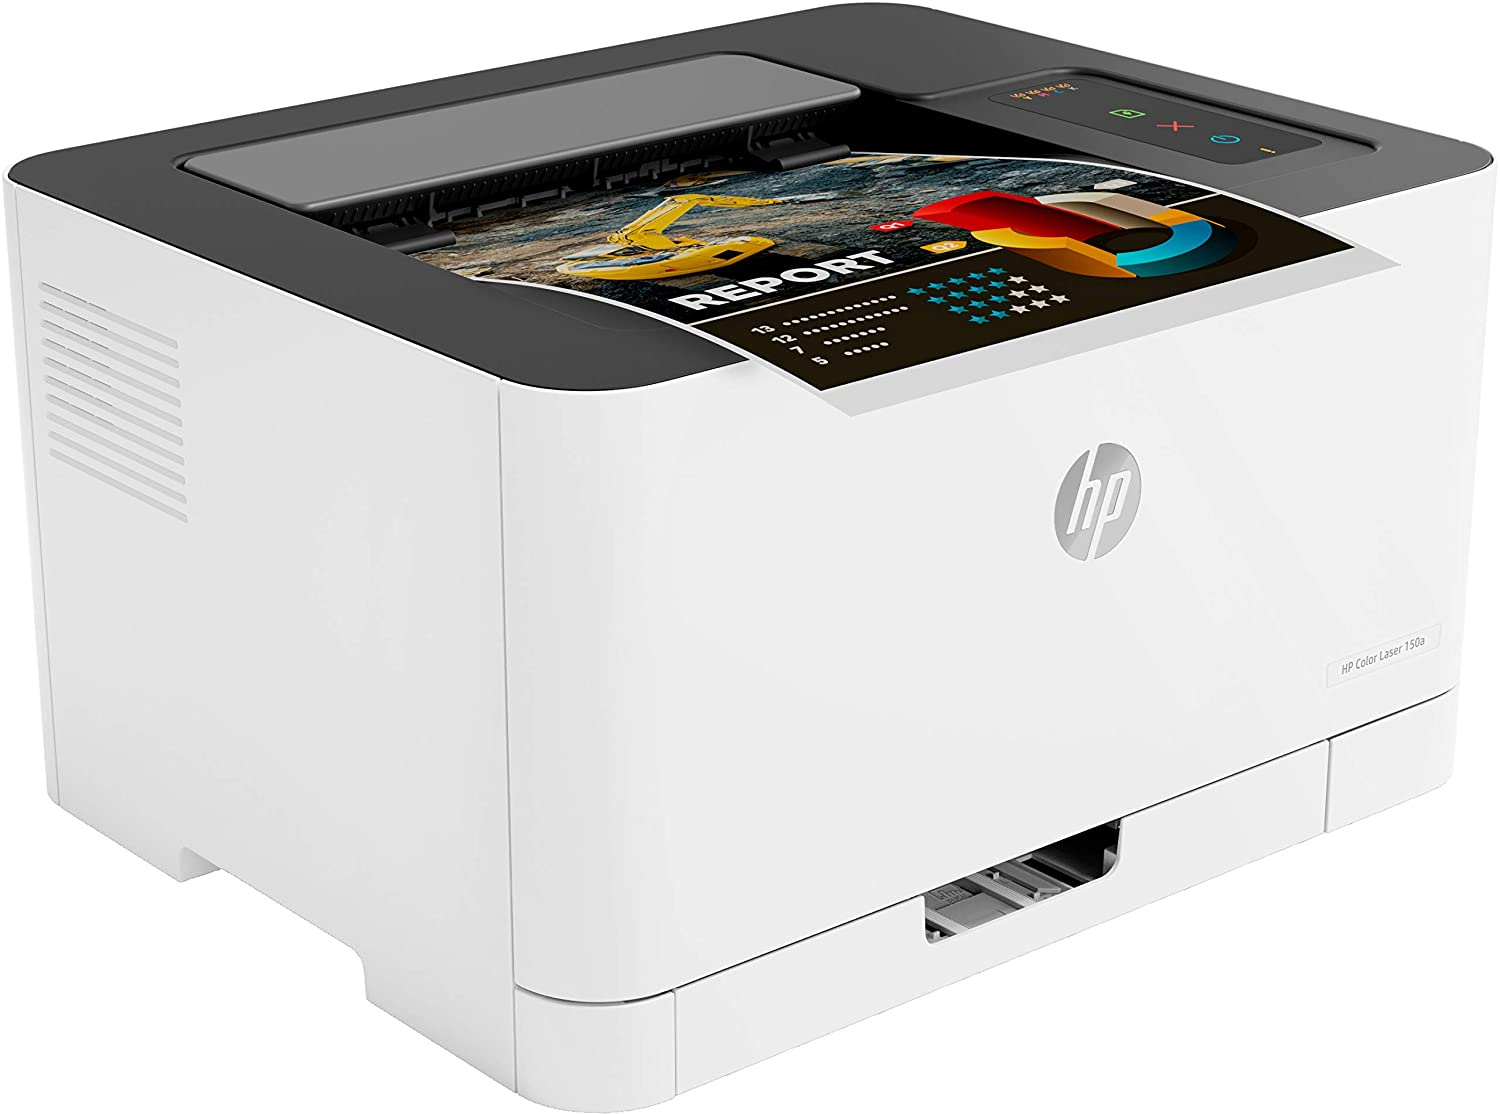 HP 150a - Impresora Láser (8 ppm Negro (A4), 4 ppm Color (A4), Apple AirPrint, Bandeja de Salida de 50 Hojas, LED, USB 2.0) Blanco